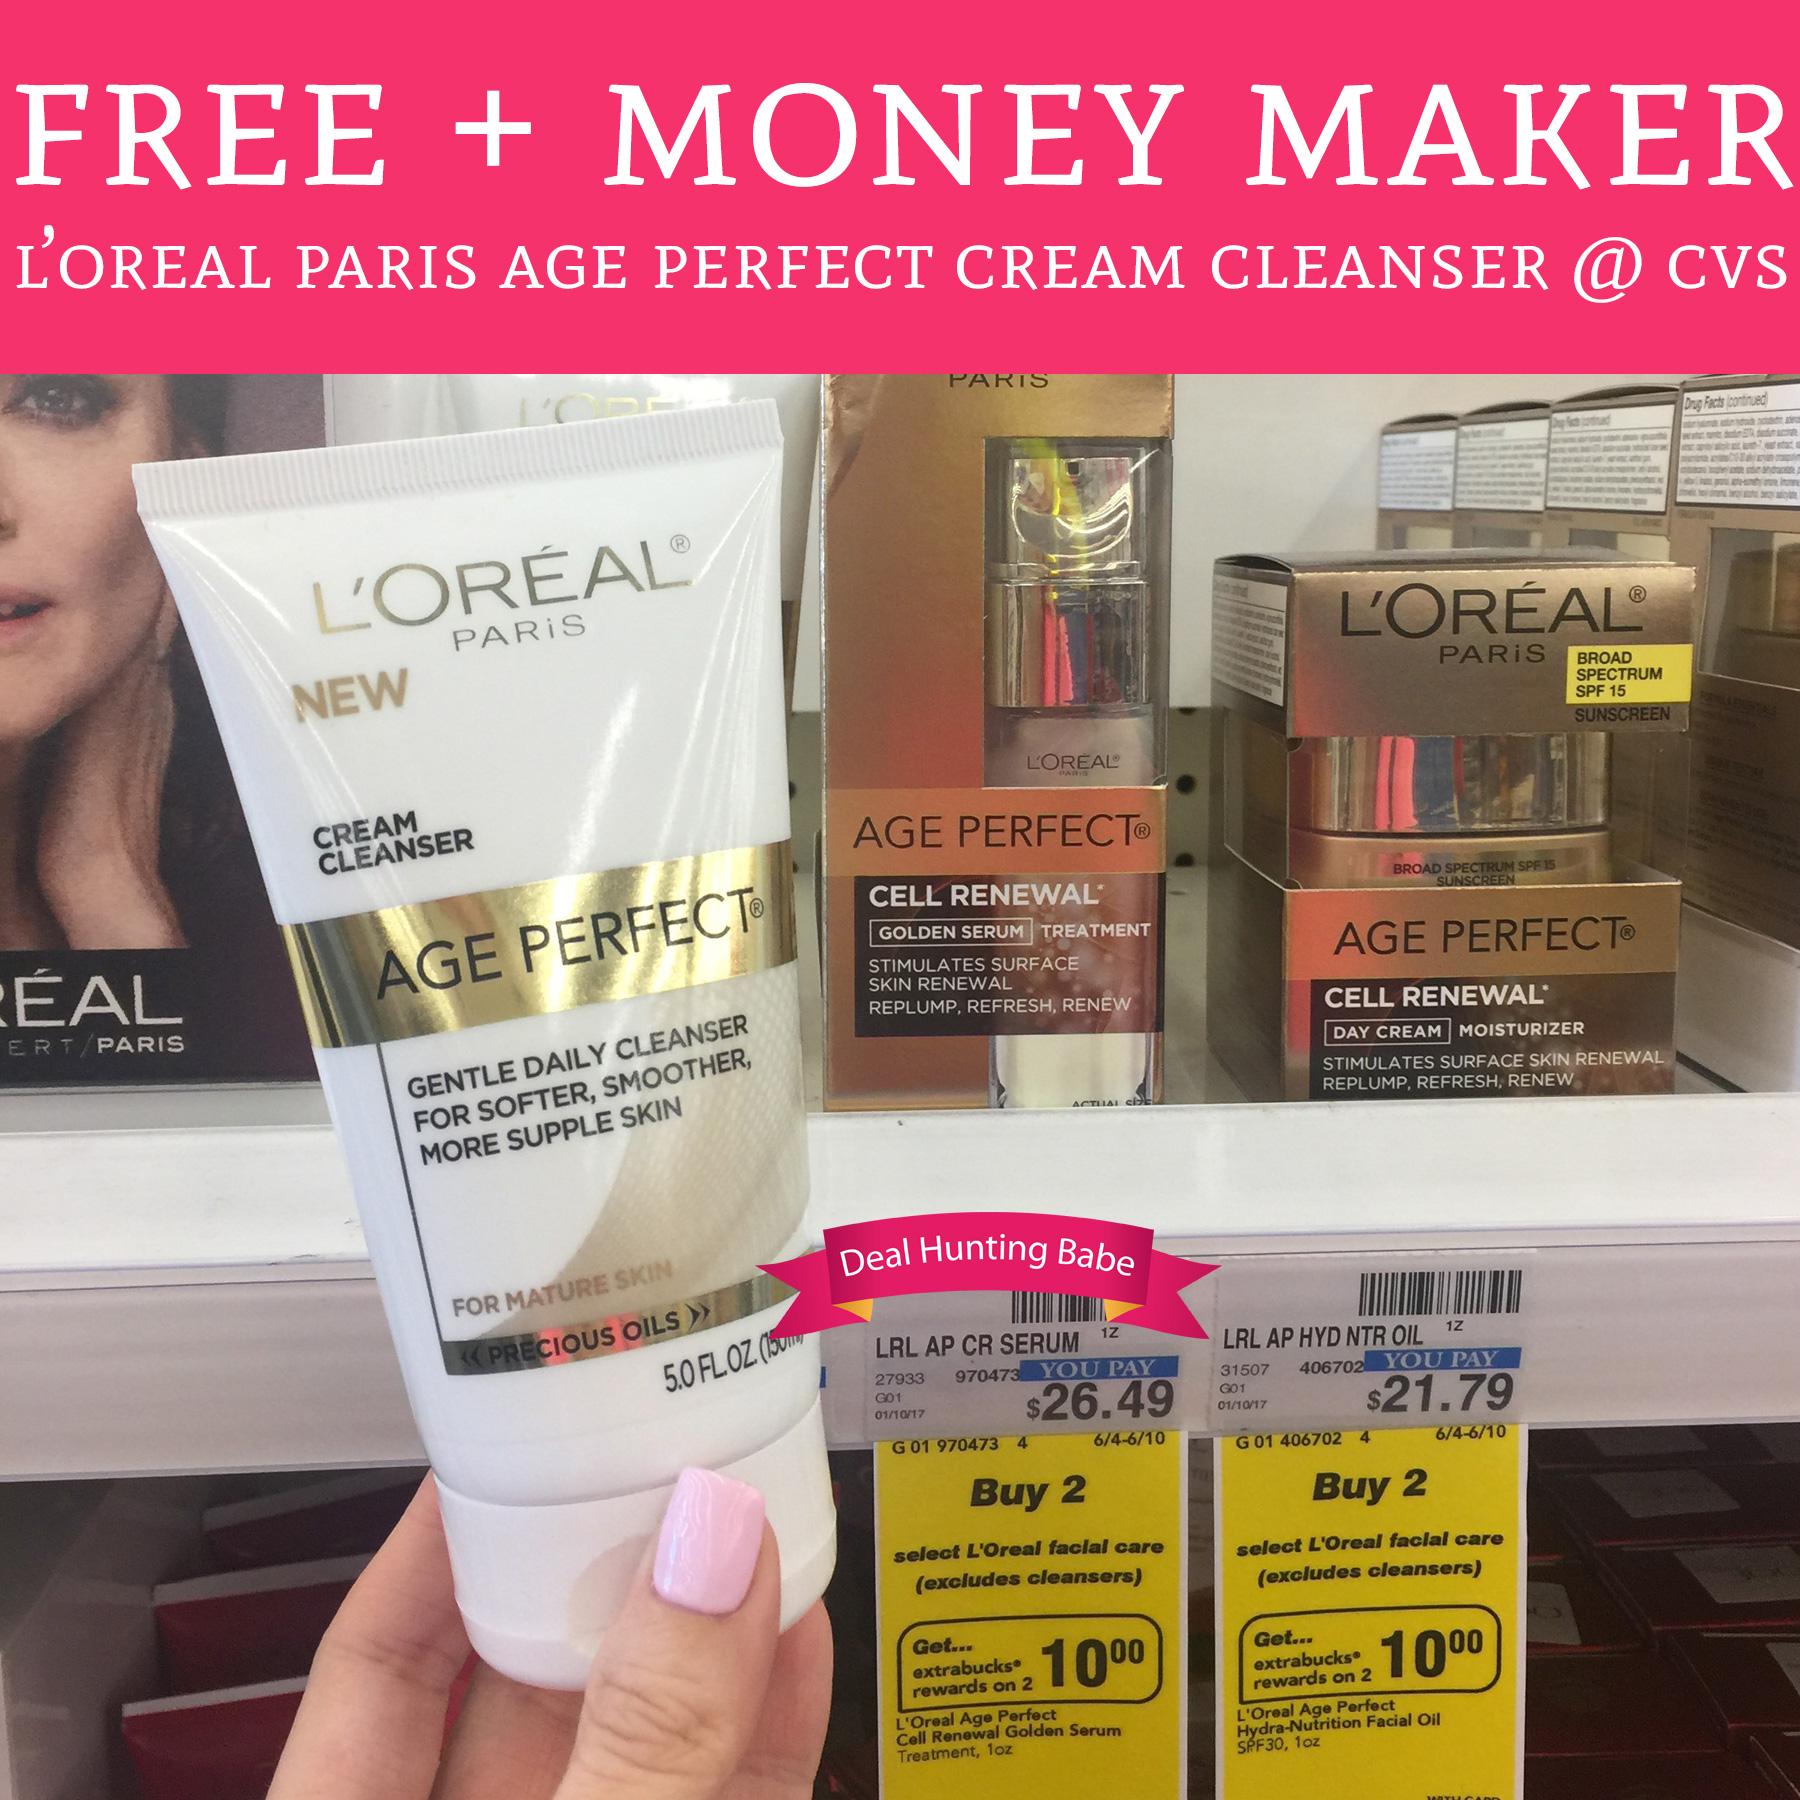 Free + Money Maker L'Oreal Paris Age Perfect Cream Cleanser @ CVS - Deal Hunting Babe